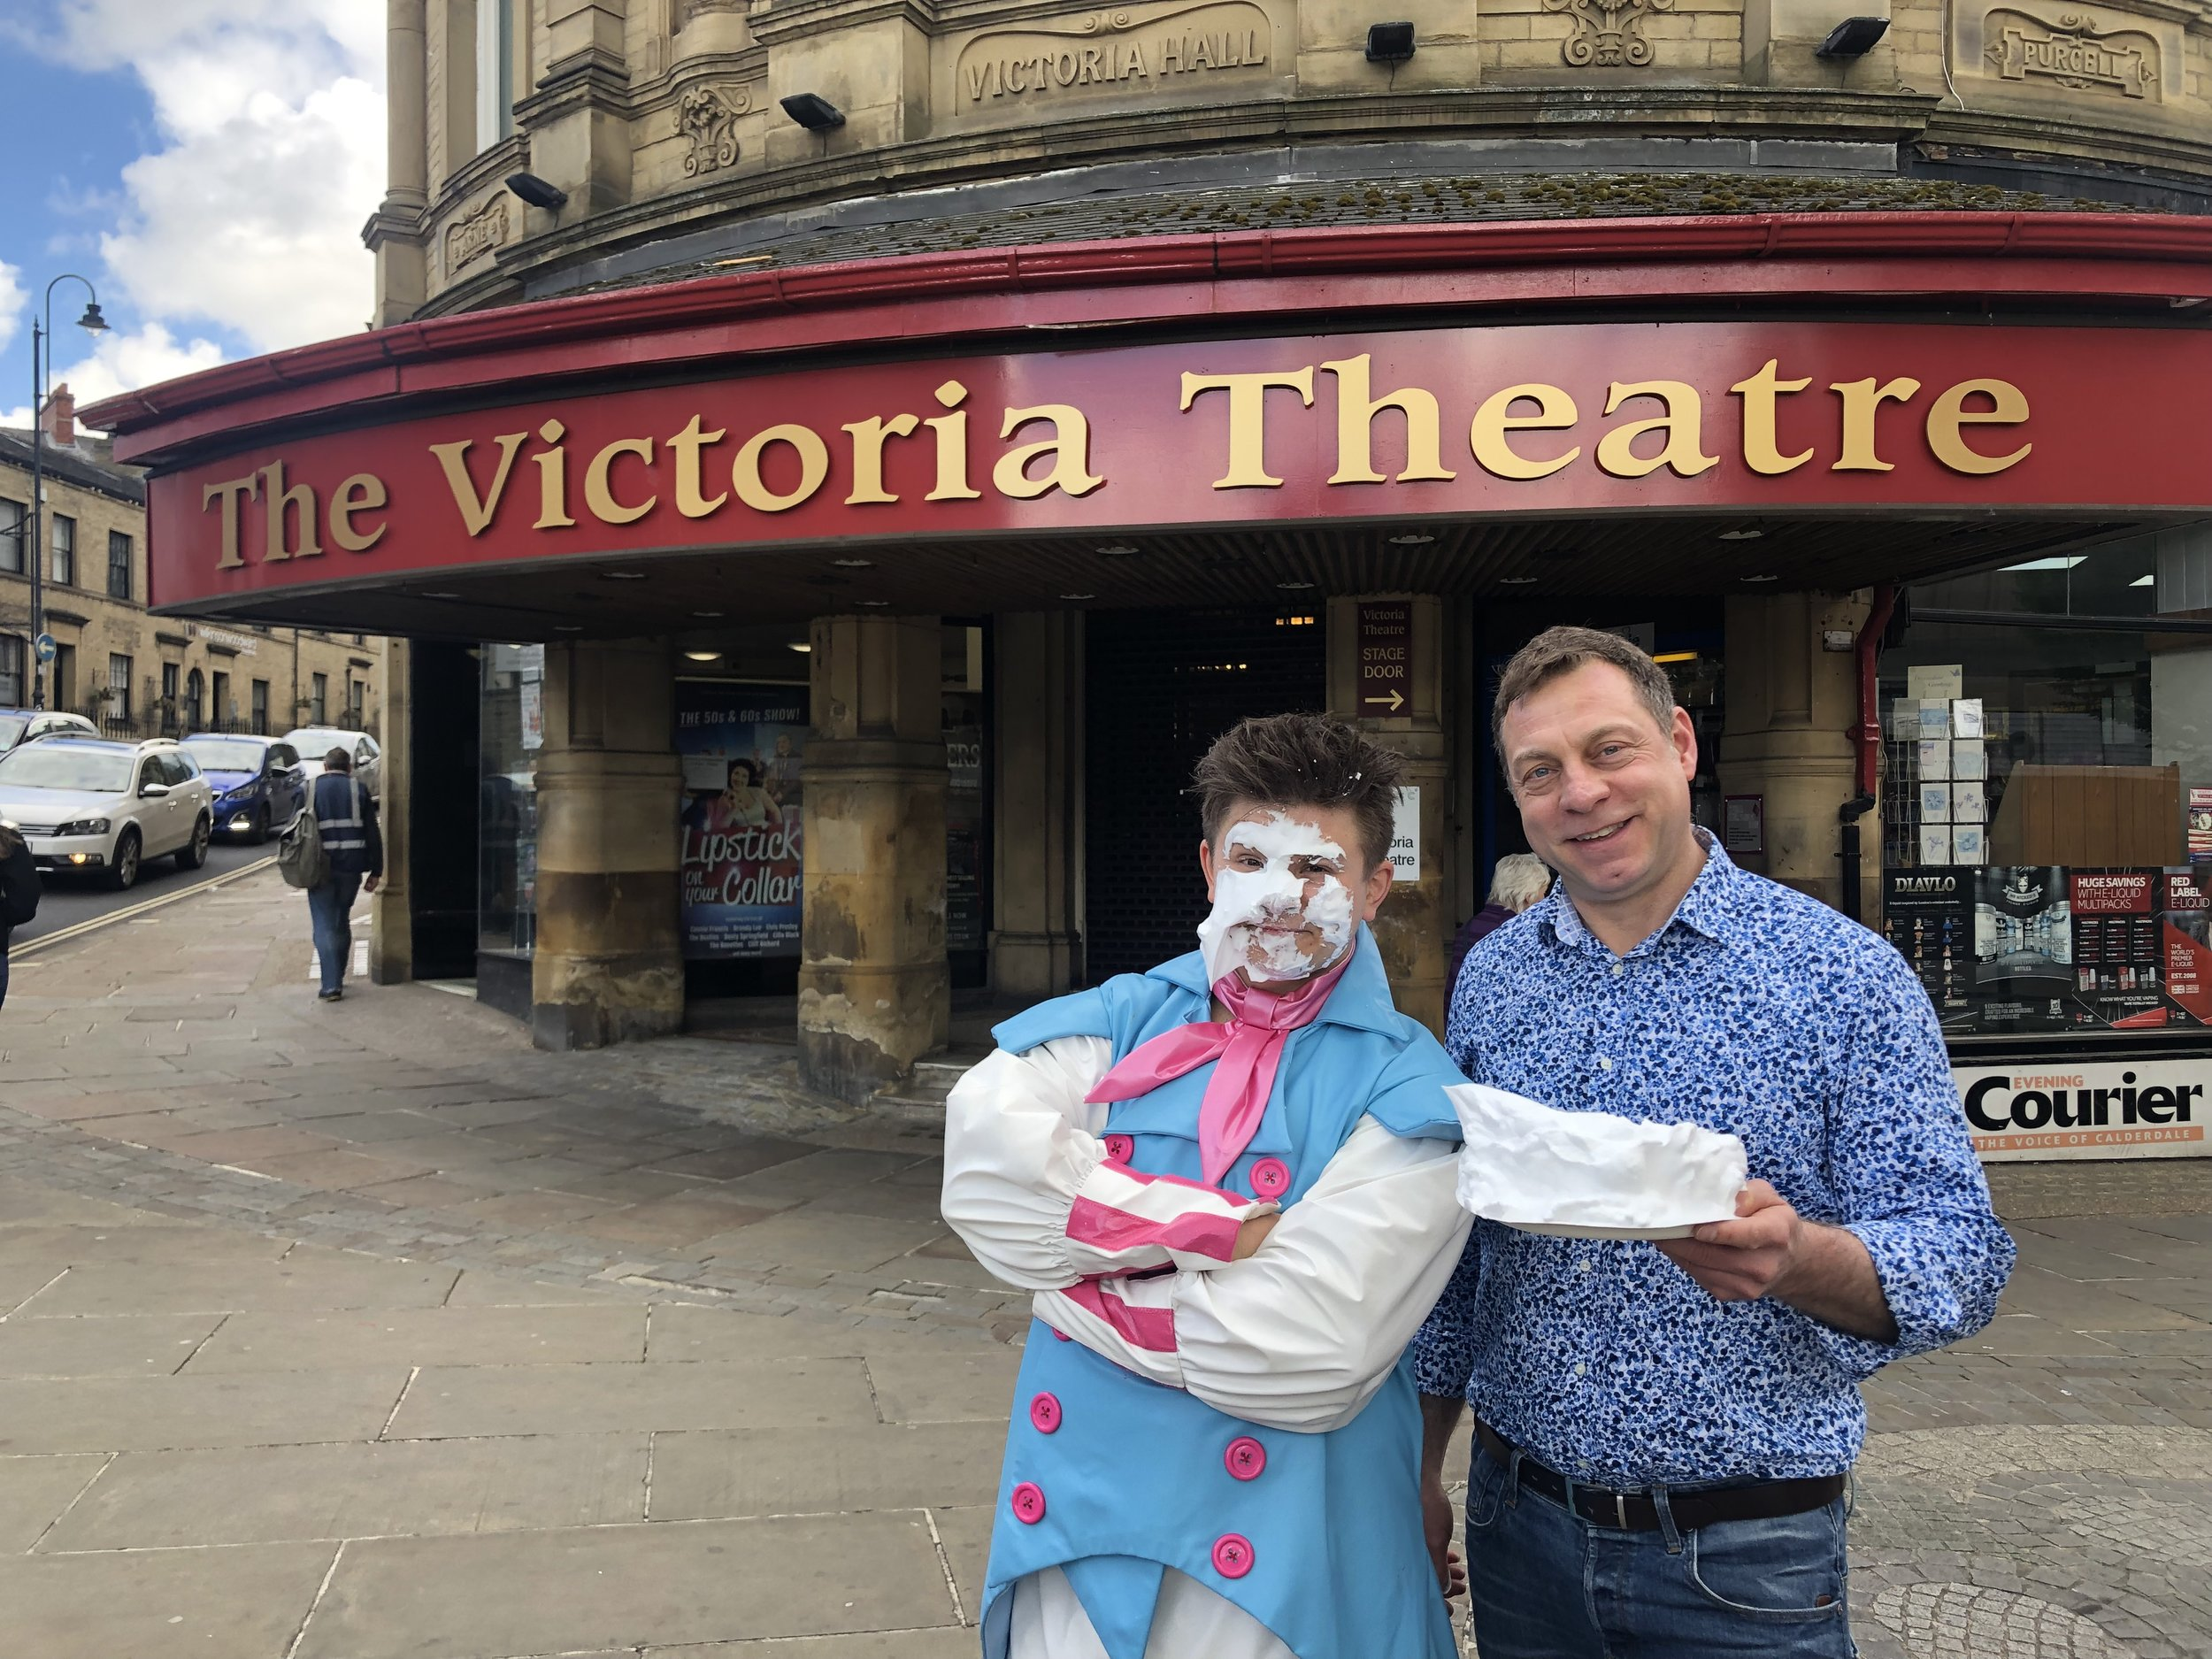 Josh met Theatre Manager Tim Fagan - who was the first to put a pie in his face!